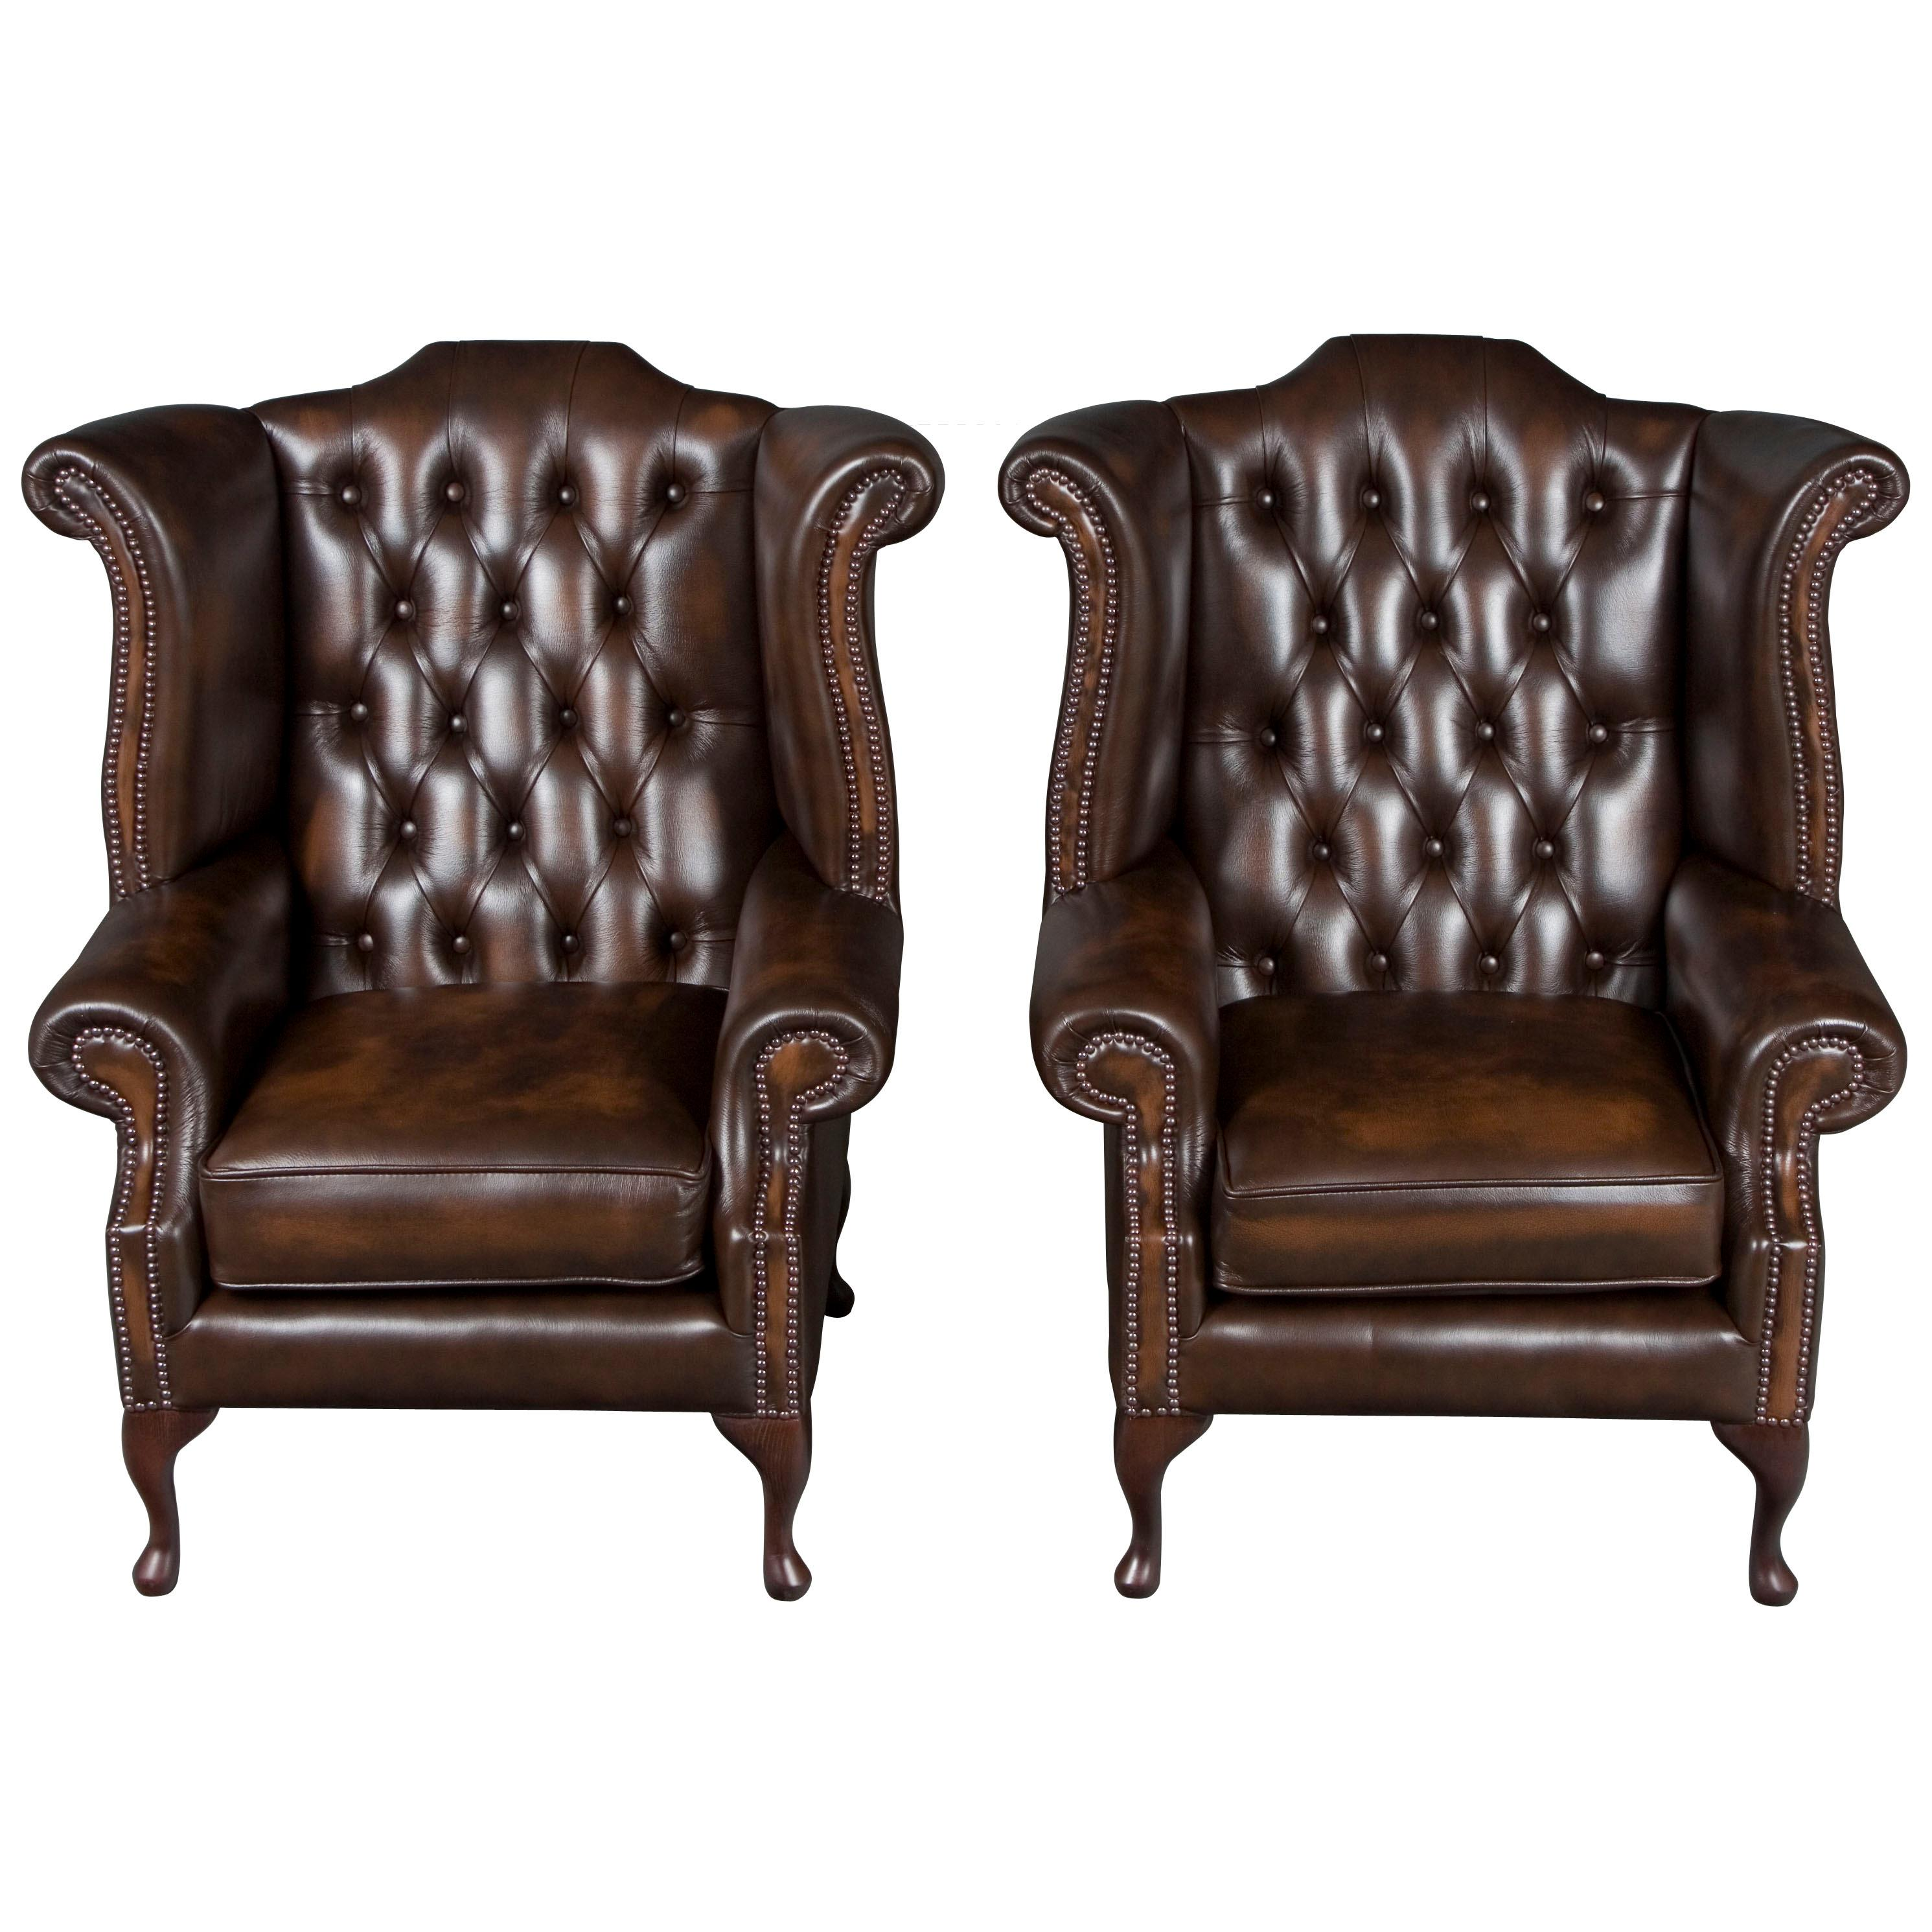 Antique Furniture Nice Museum Quality Antique Chesterfield Style Leather Handmade Wingback Armchair Special Buy